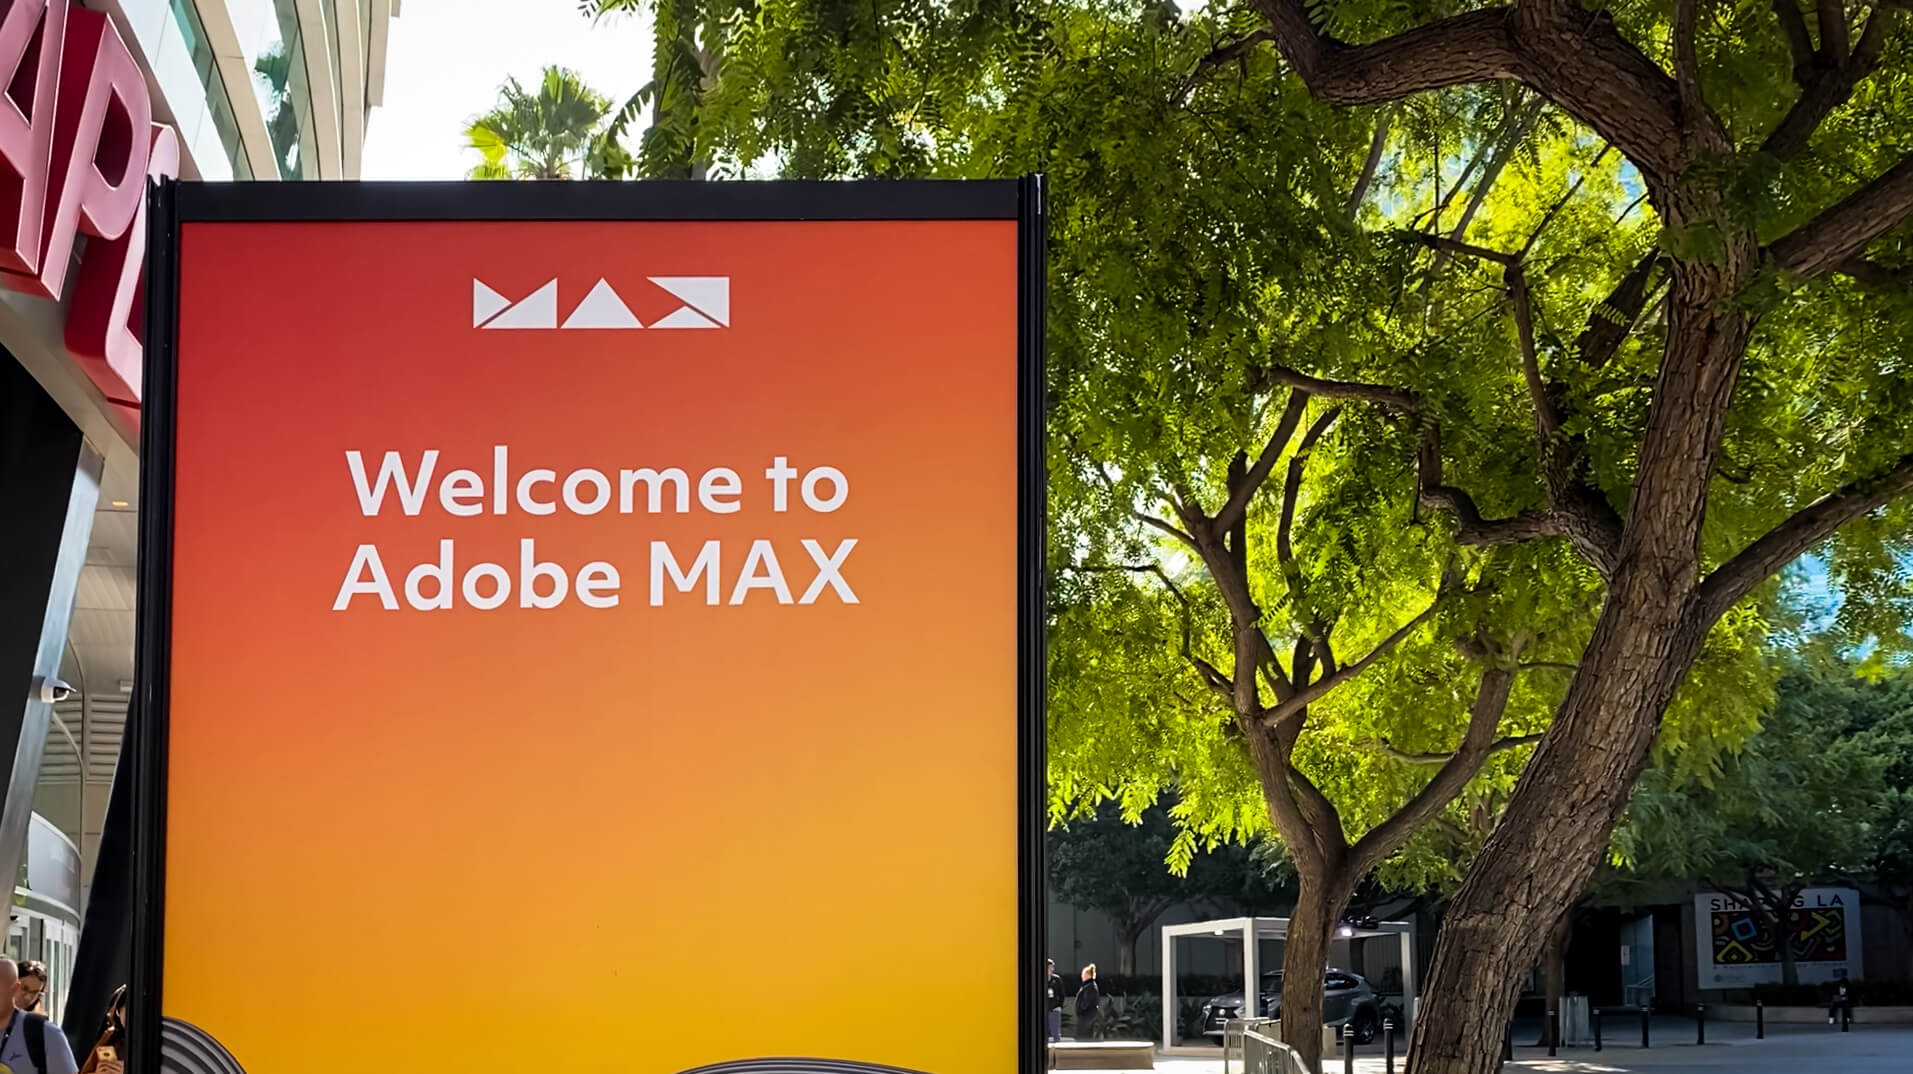 Welcome to Adobe MAX sign